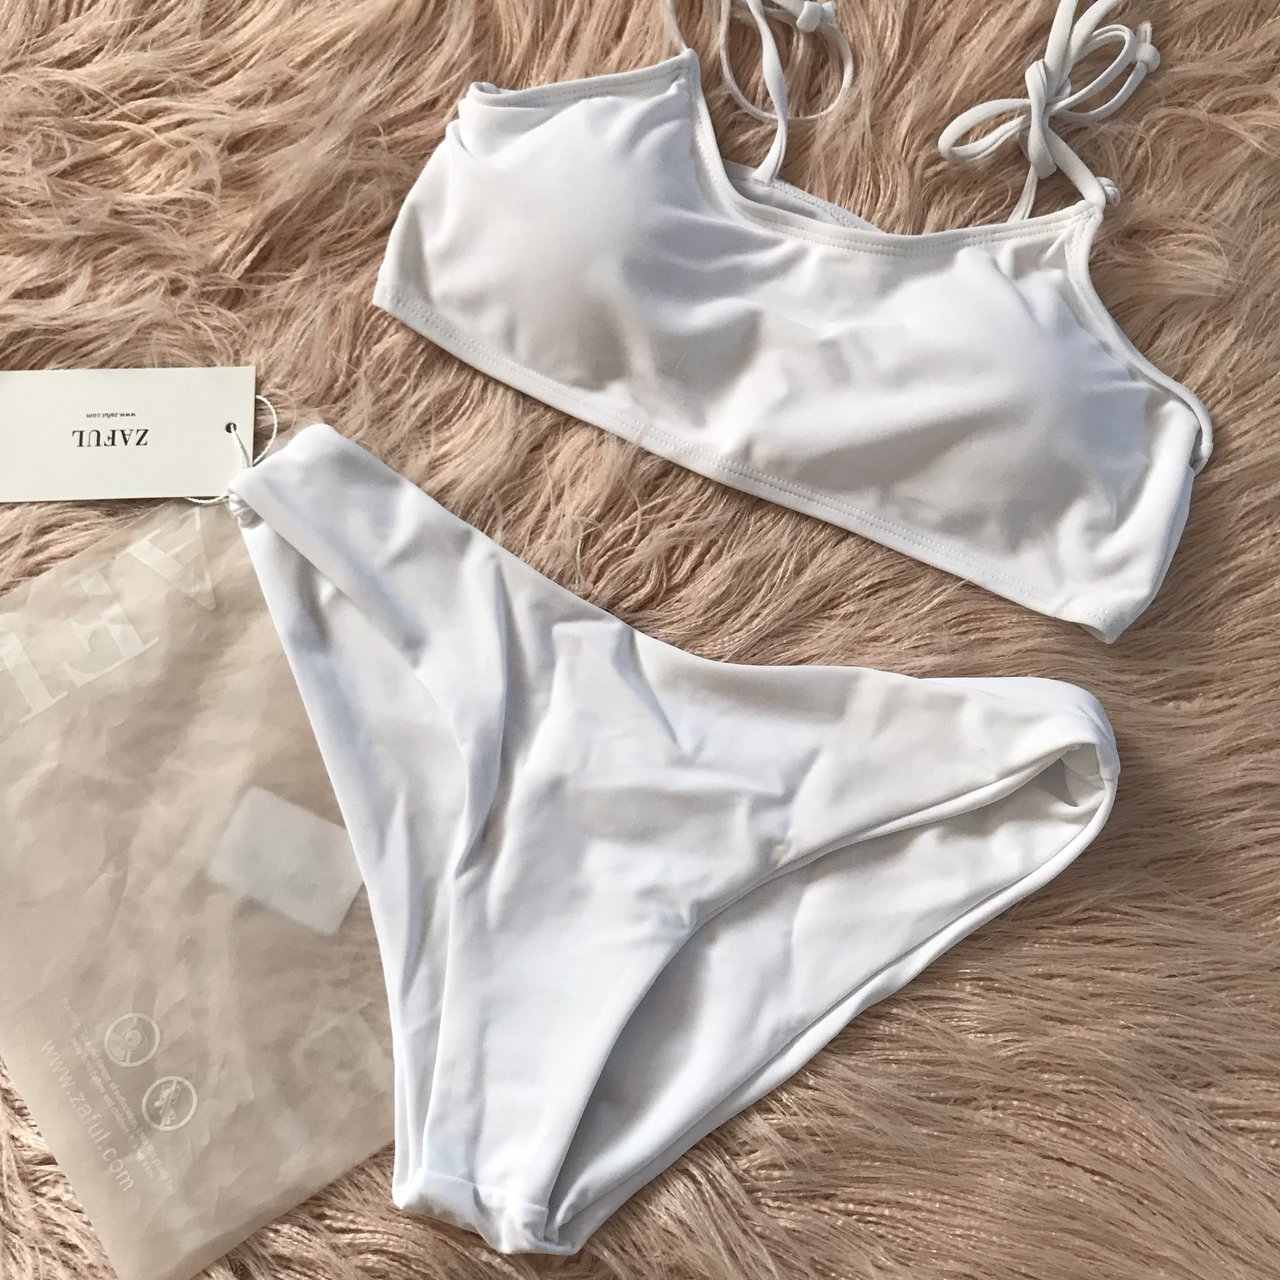 ae8e50fb6995f These cute ☹ White, padded, double lined, high waisted new - Depop